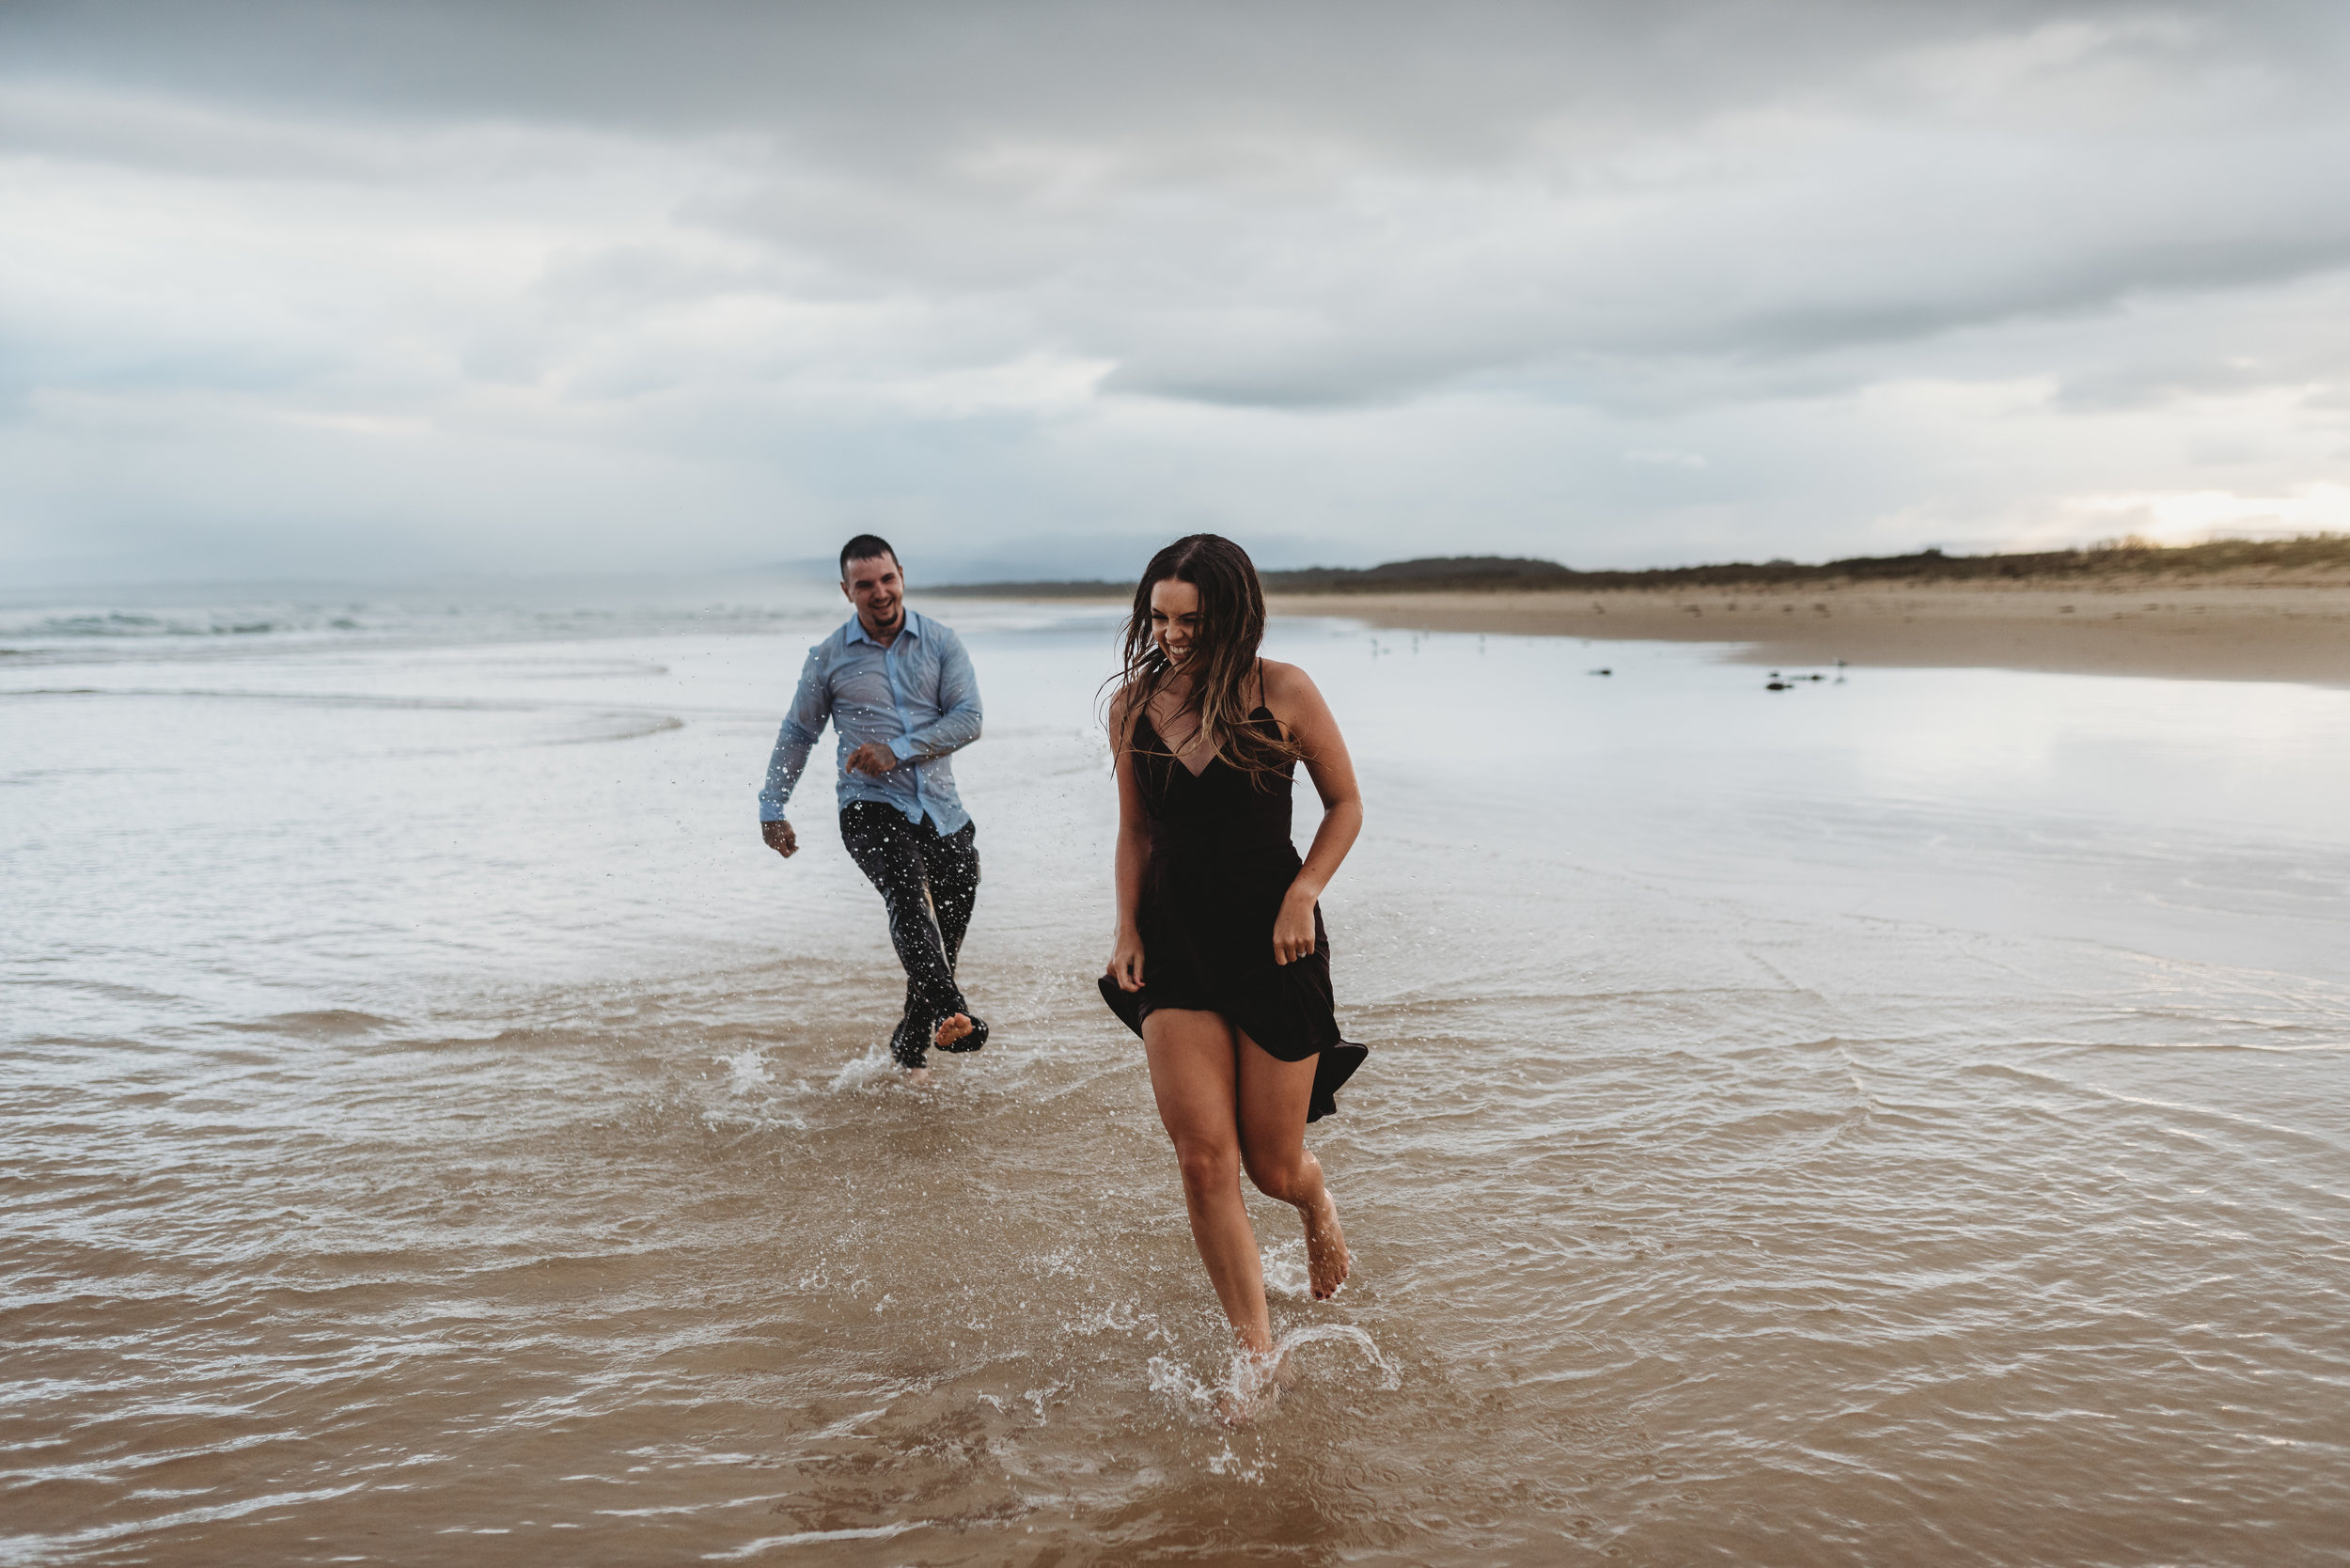 Brooke & Peter - Rainy Sunset Wollongong Engagement     February 22nd 2019